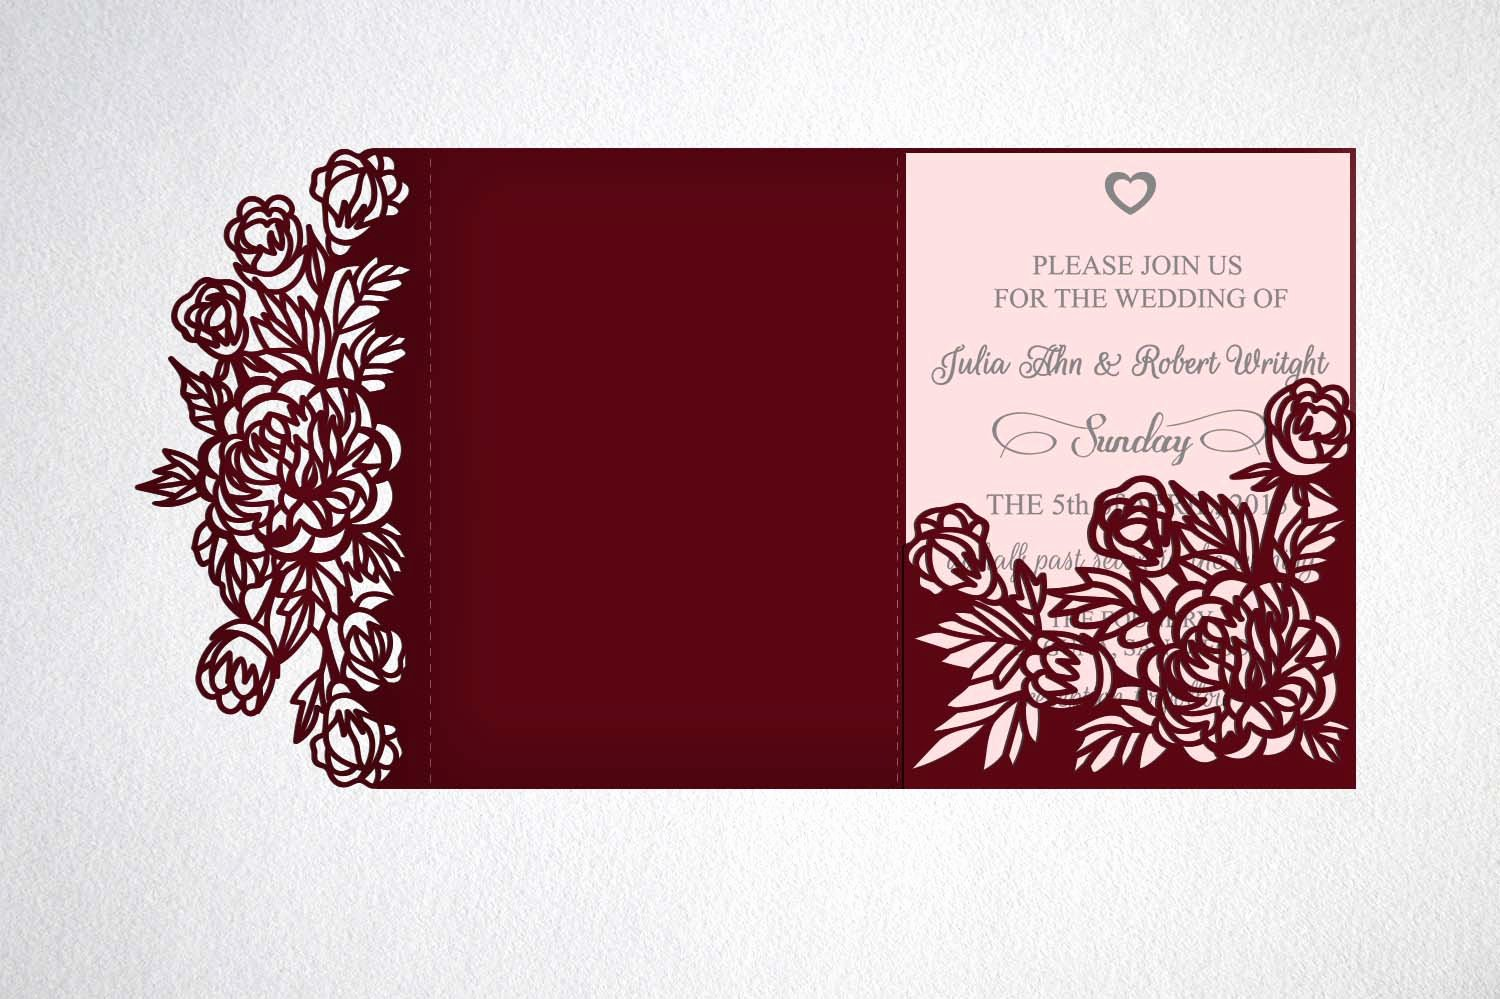 Tri Fold Wedding Invite Template Inspirational Tri Fold Wedding Invitation Svg Cricut Laser Cut Template